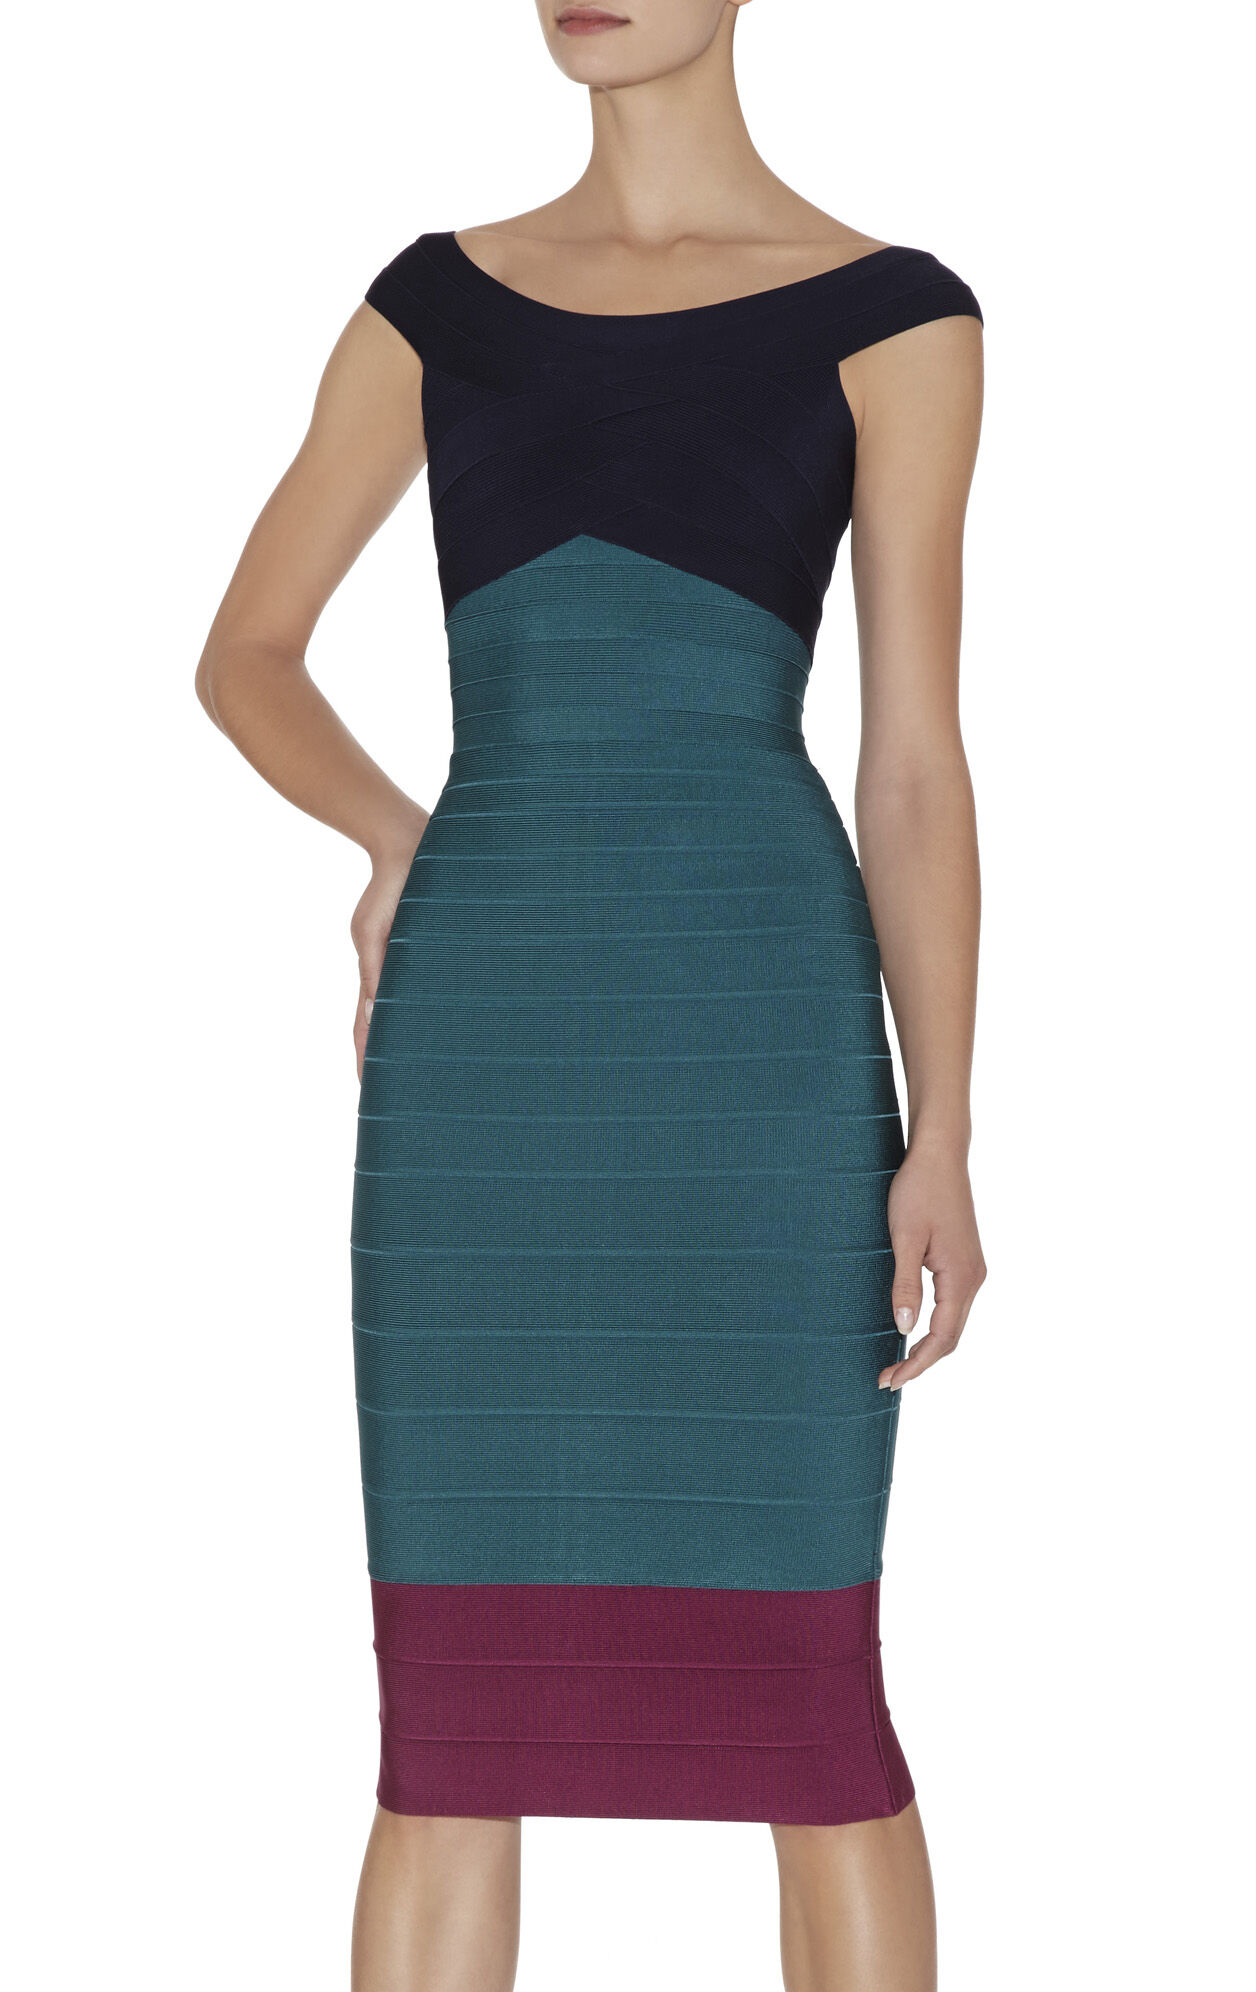 Lania Multi Colorblocked Dress